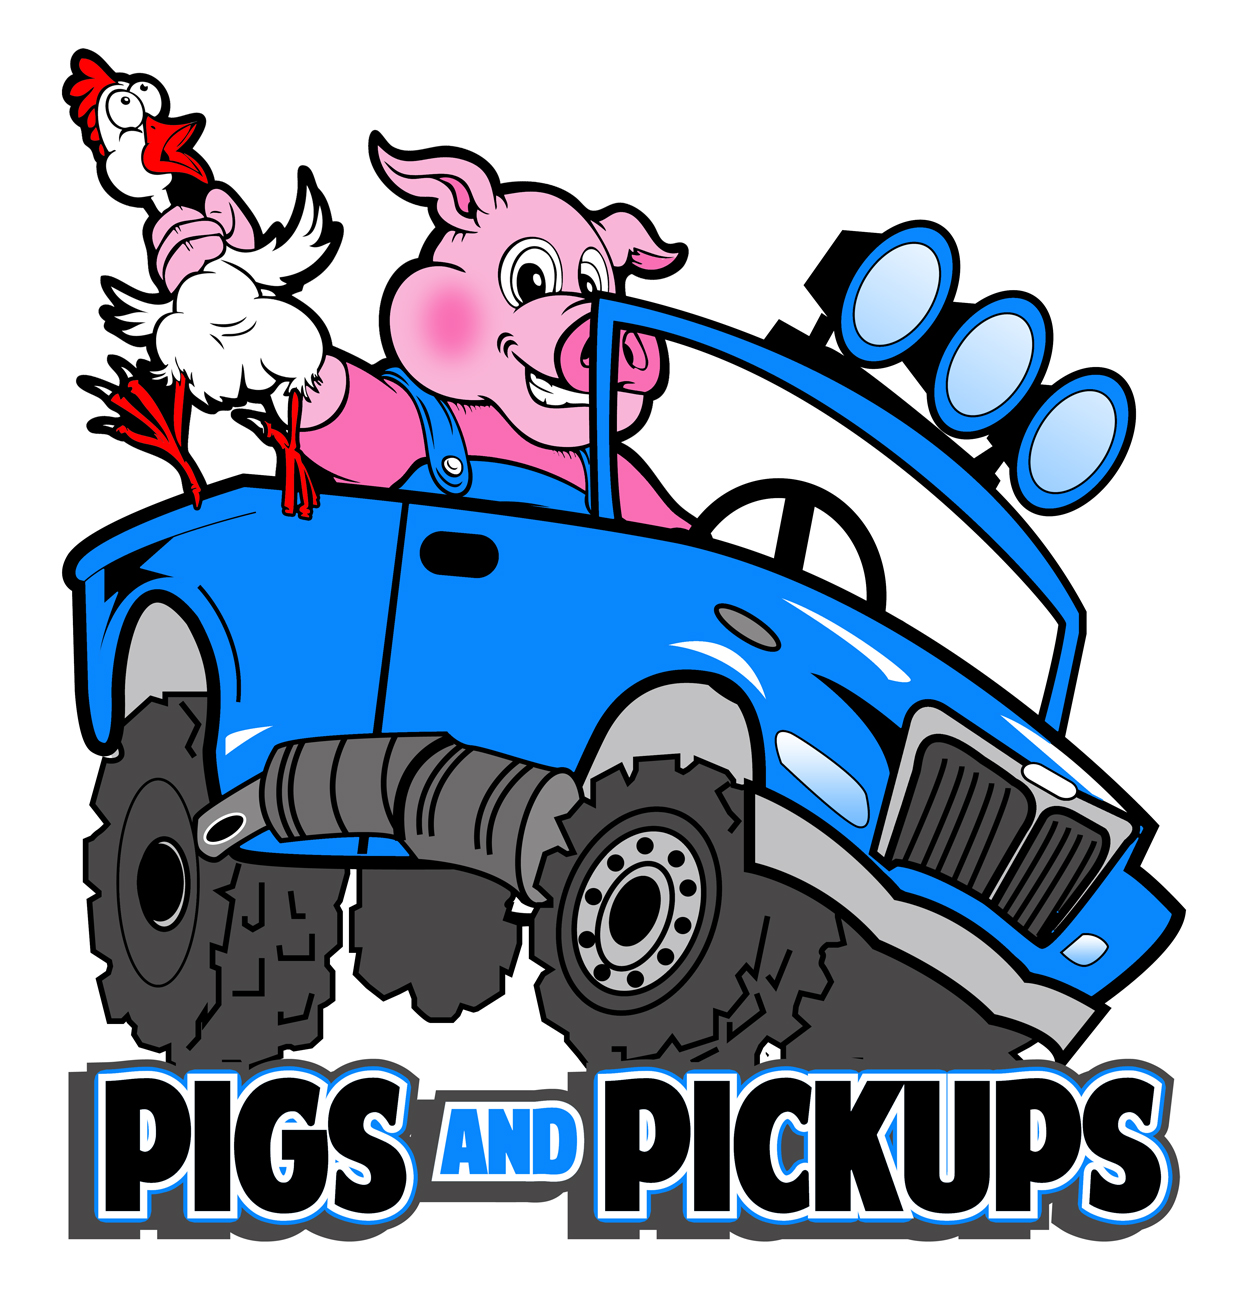 Pigs and Pickups